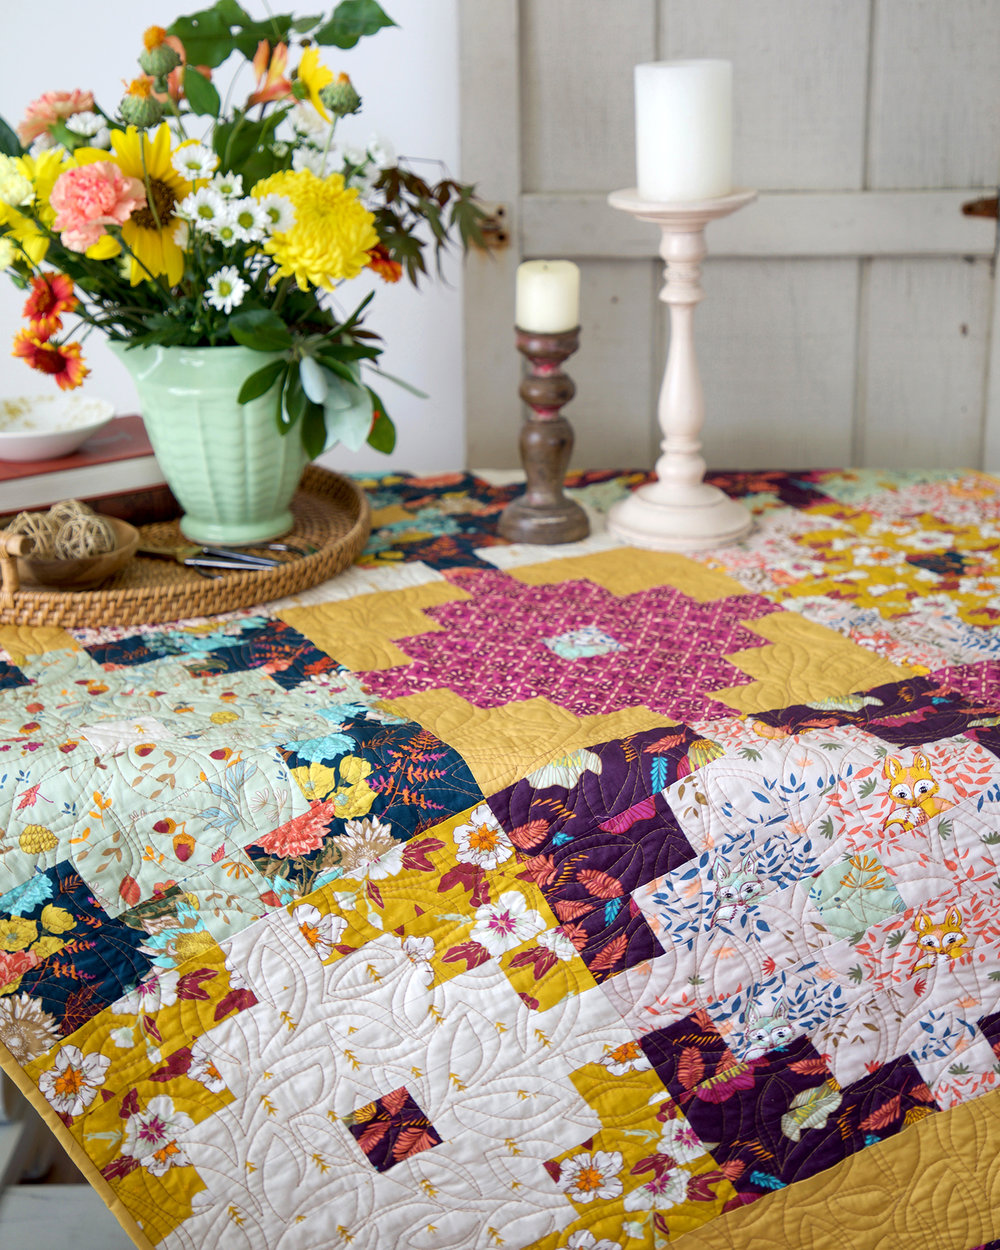 Wild Honey quilt by Sharon Holland